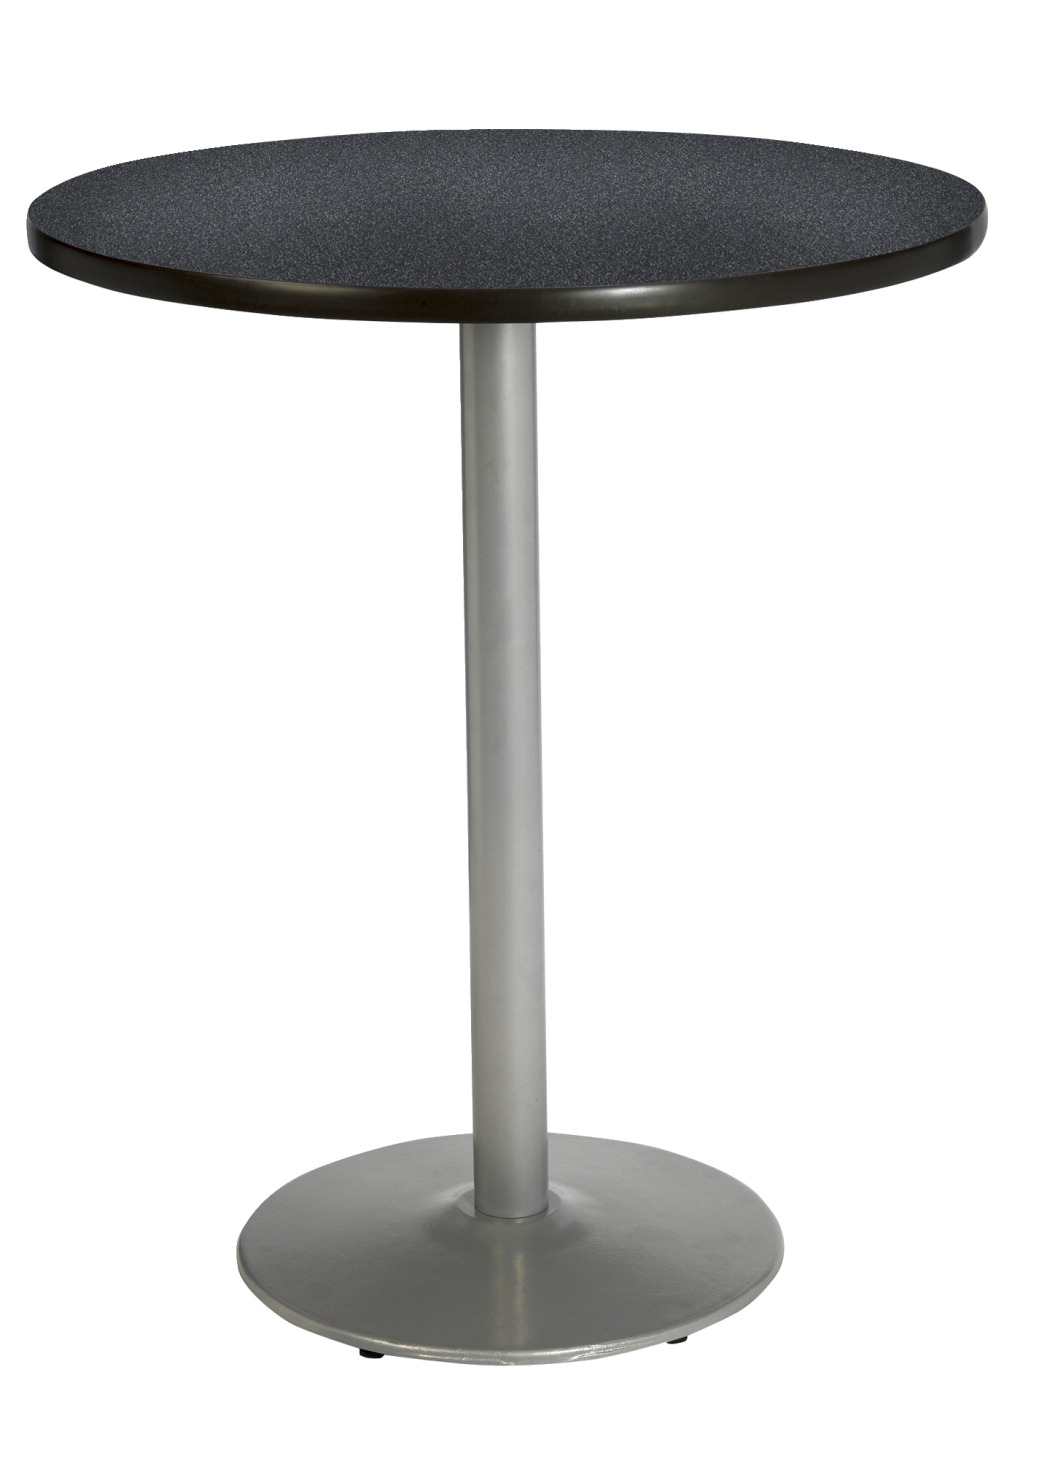 Kfi Seating Round Bar Height Cafe Pedestal Table Base 42 X Inches